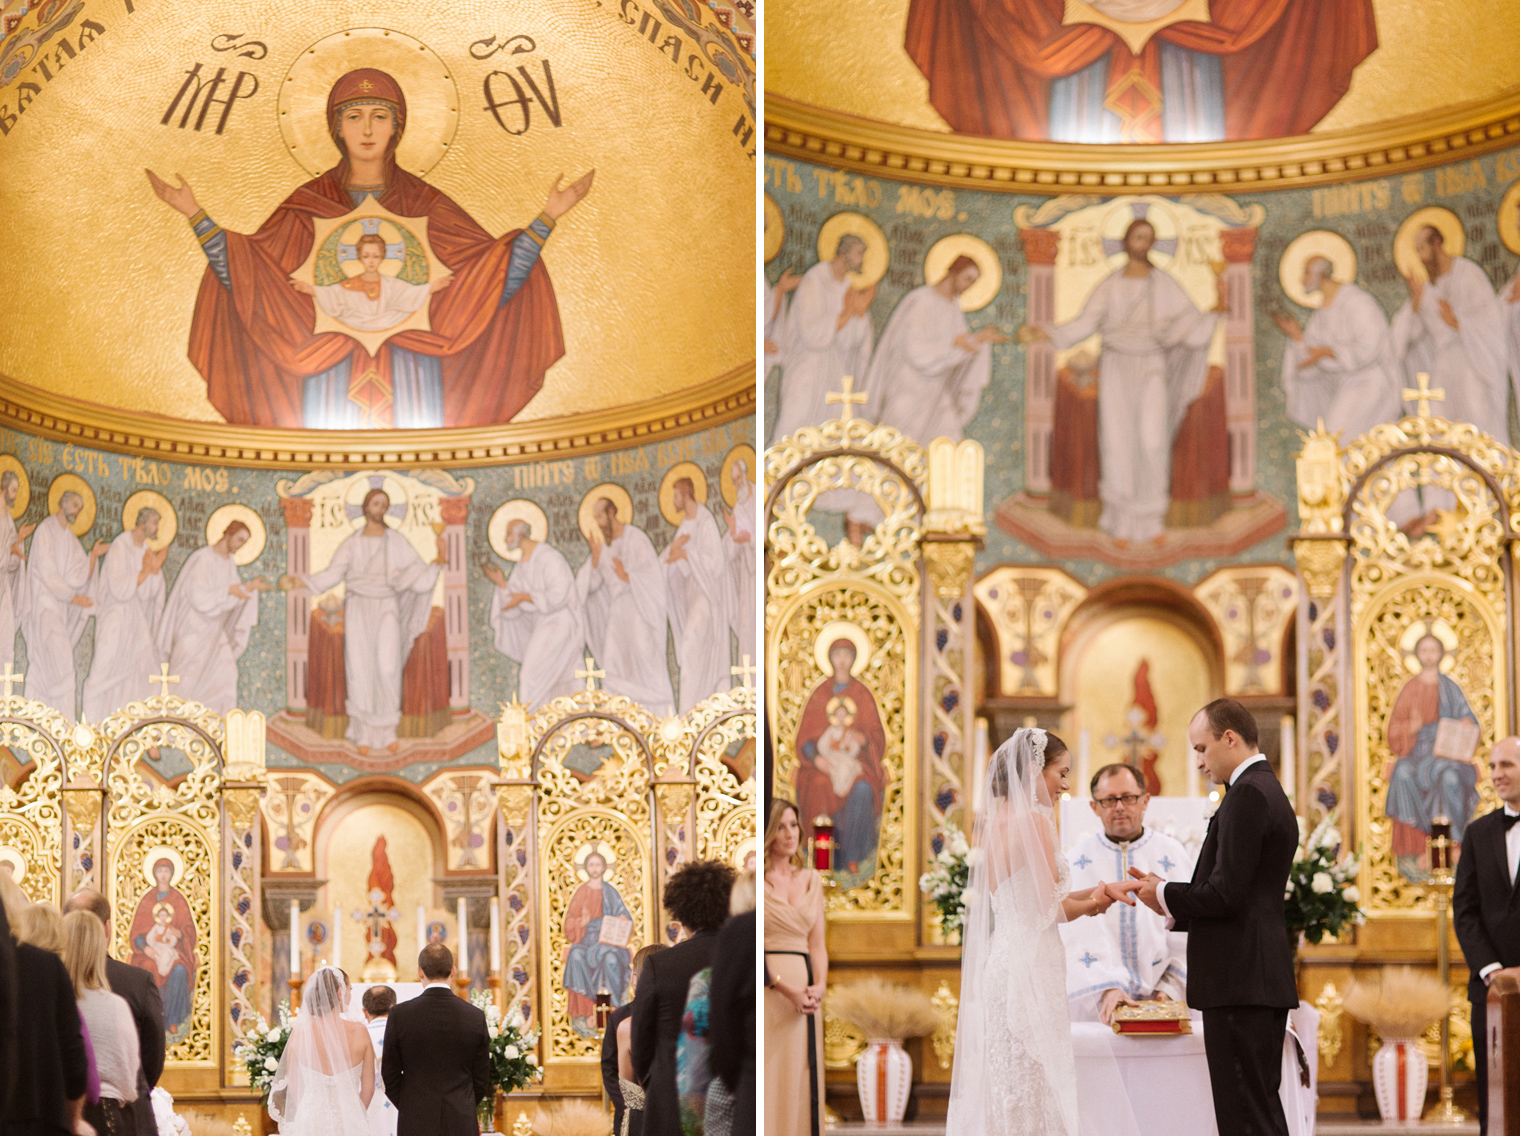 The bride and groom exchange rings during a Ukrainian Orthodox Wedding Ceremony in Hamtramck Michigan by photographer Heather Jowett.